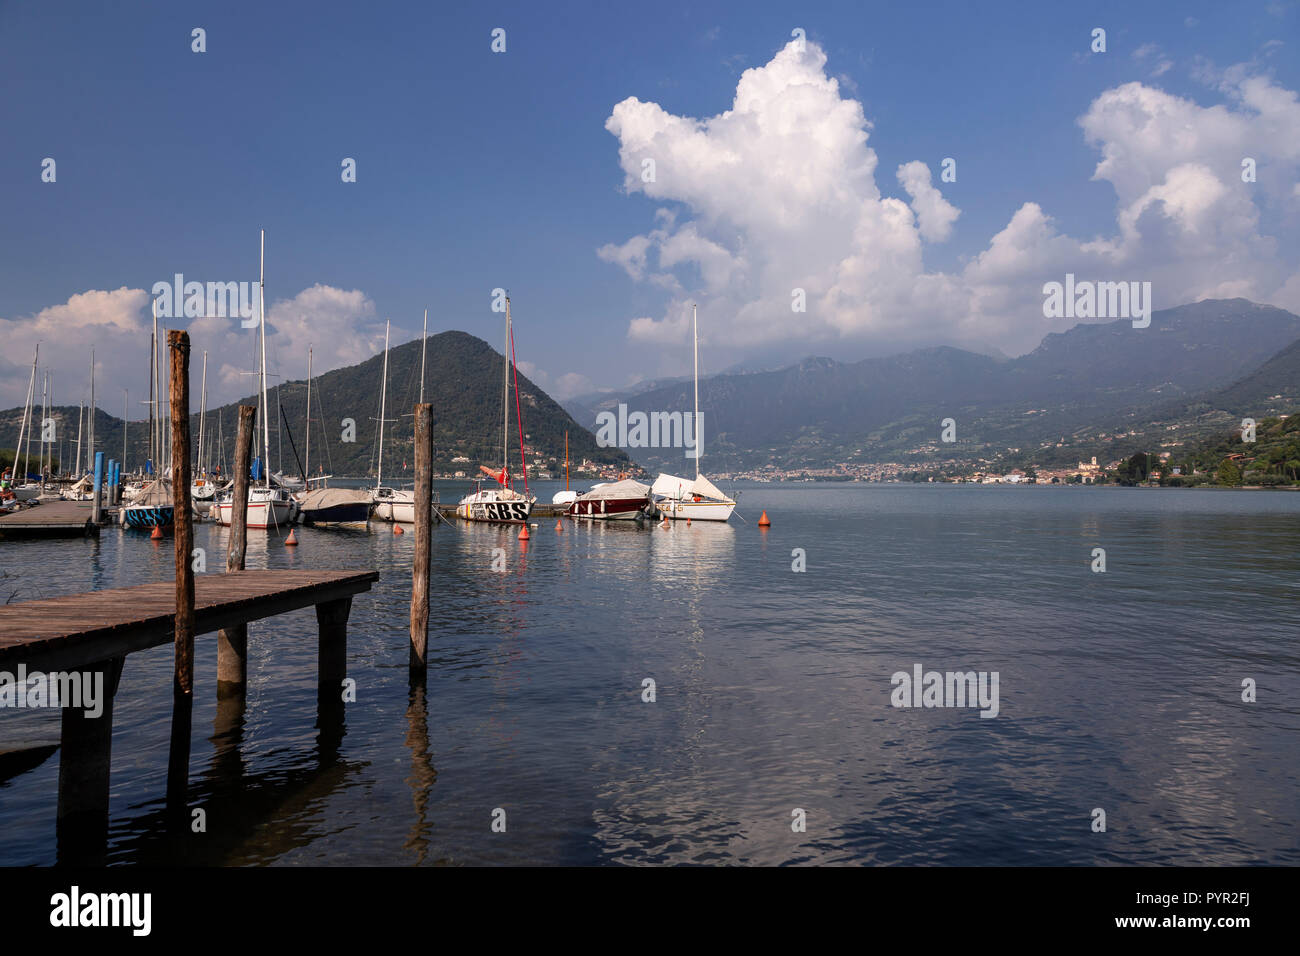 Boats moored on Lake Iseo in northern Italy - Stock Image